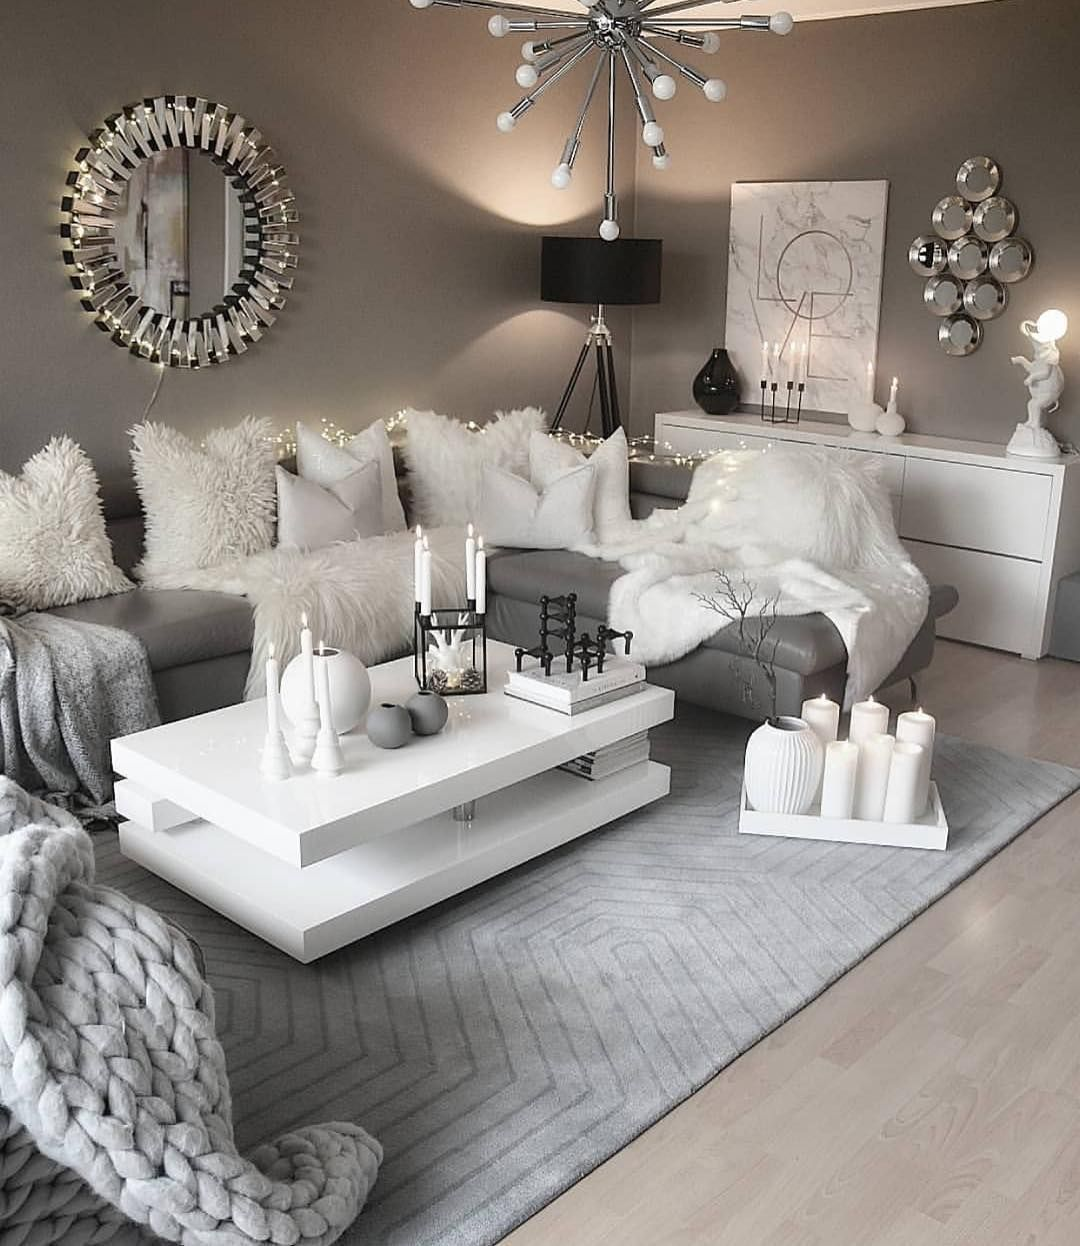 Living Room Goals Tag Someone Who Would This Photos B Modernh Idee Arredamento Soggiorno Idee Arredamento Camera Da Letto Arredamento Salotto Idee